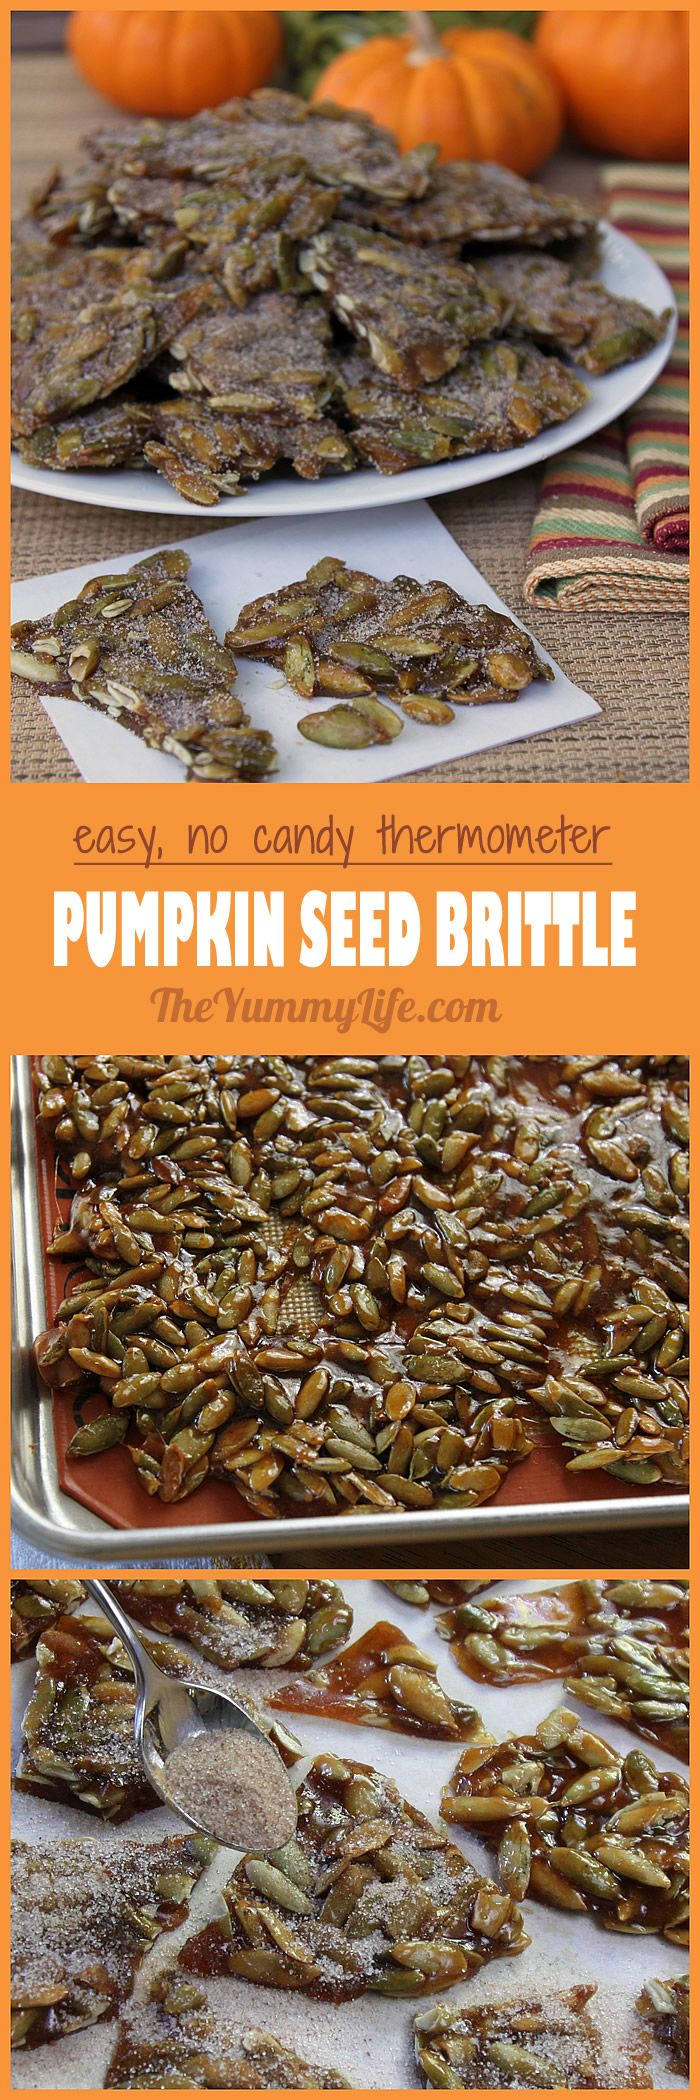 Easy Pumpkin Seed (Pepita) Brittle. Dusted with pumpkin pie spice, deliciously sweet and salty, no candy thermometer needed. From TheYummyLife.com.